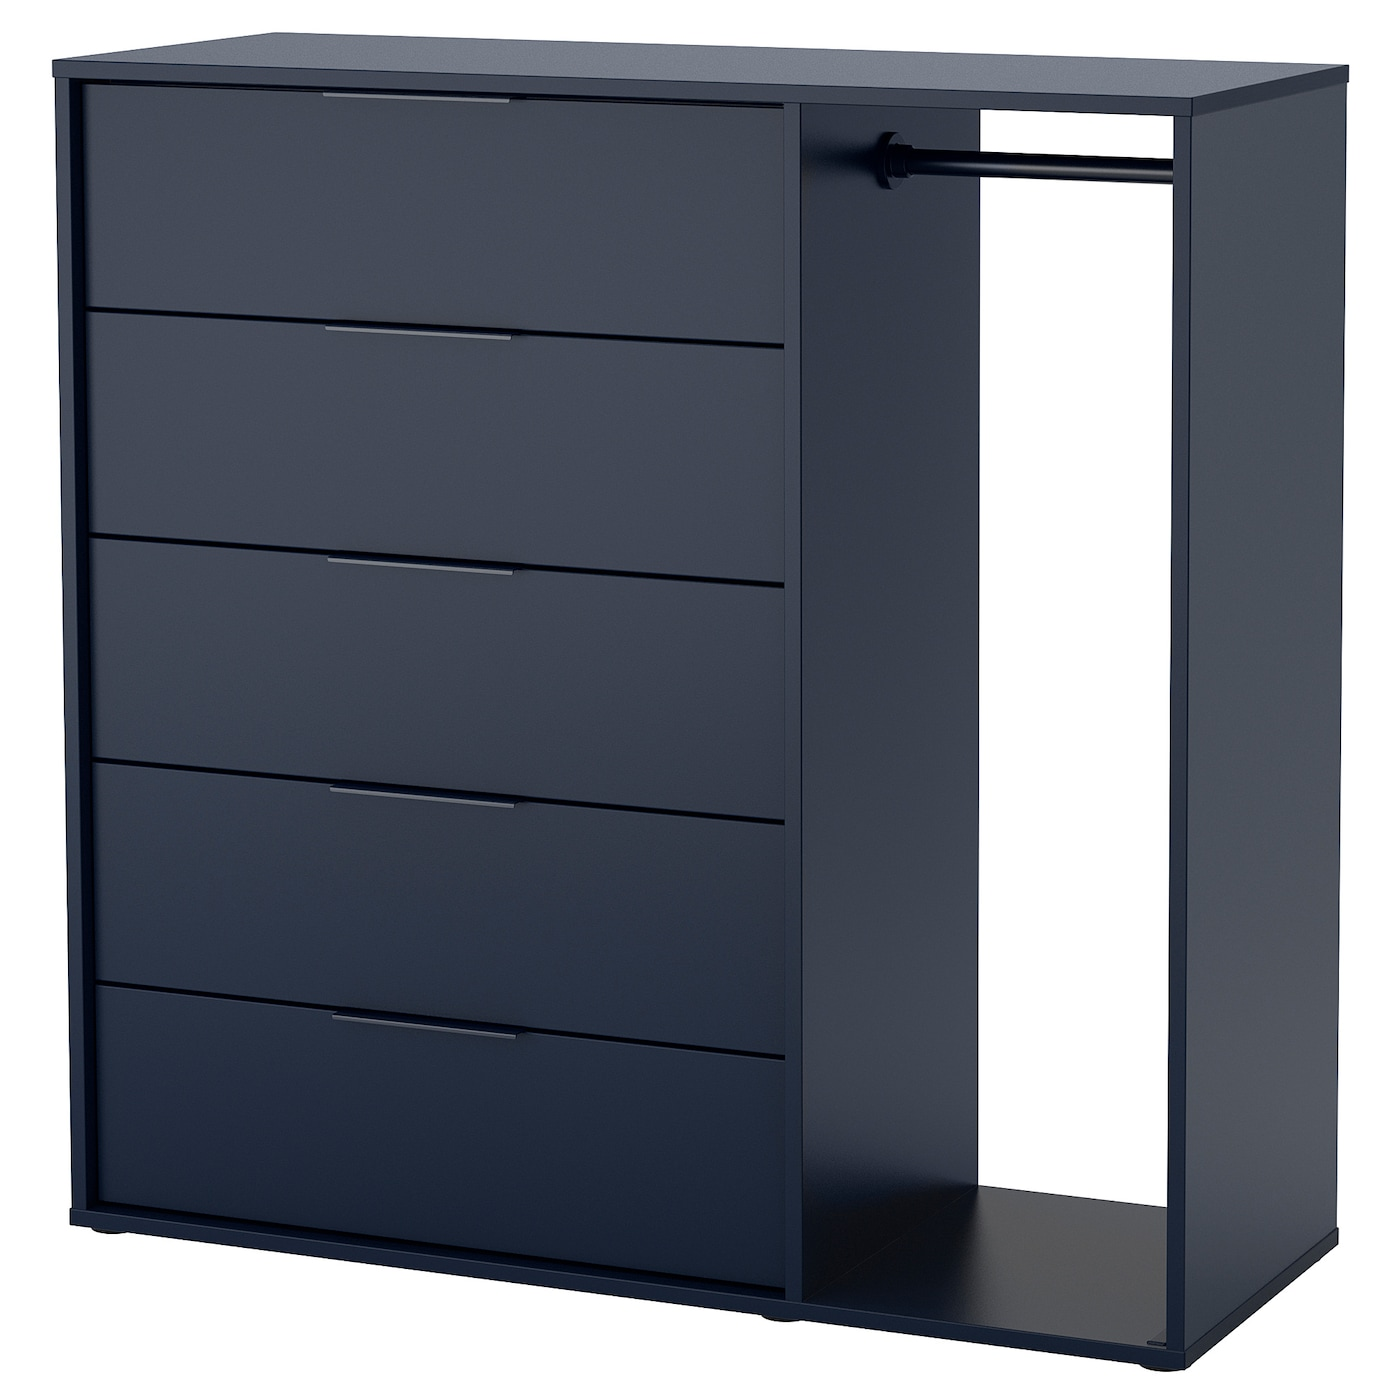 Ikea nordmela chest of drawers with clothes rail smooth running drawers with pull out stop